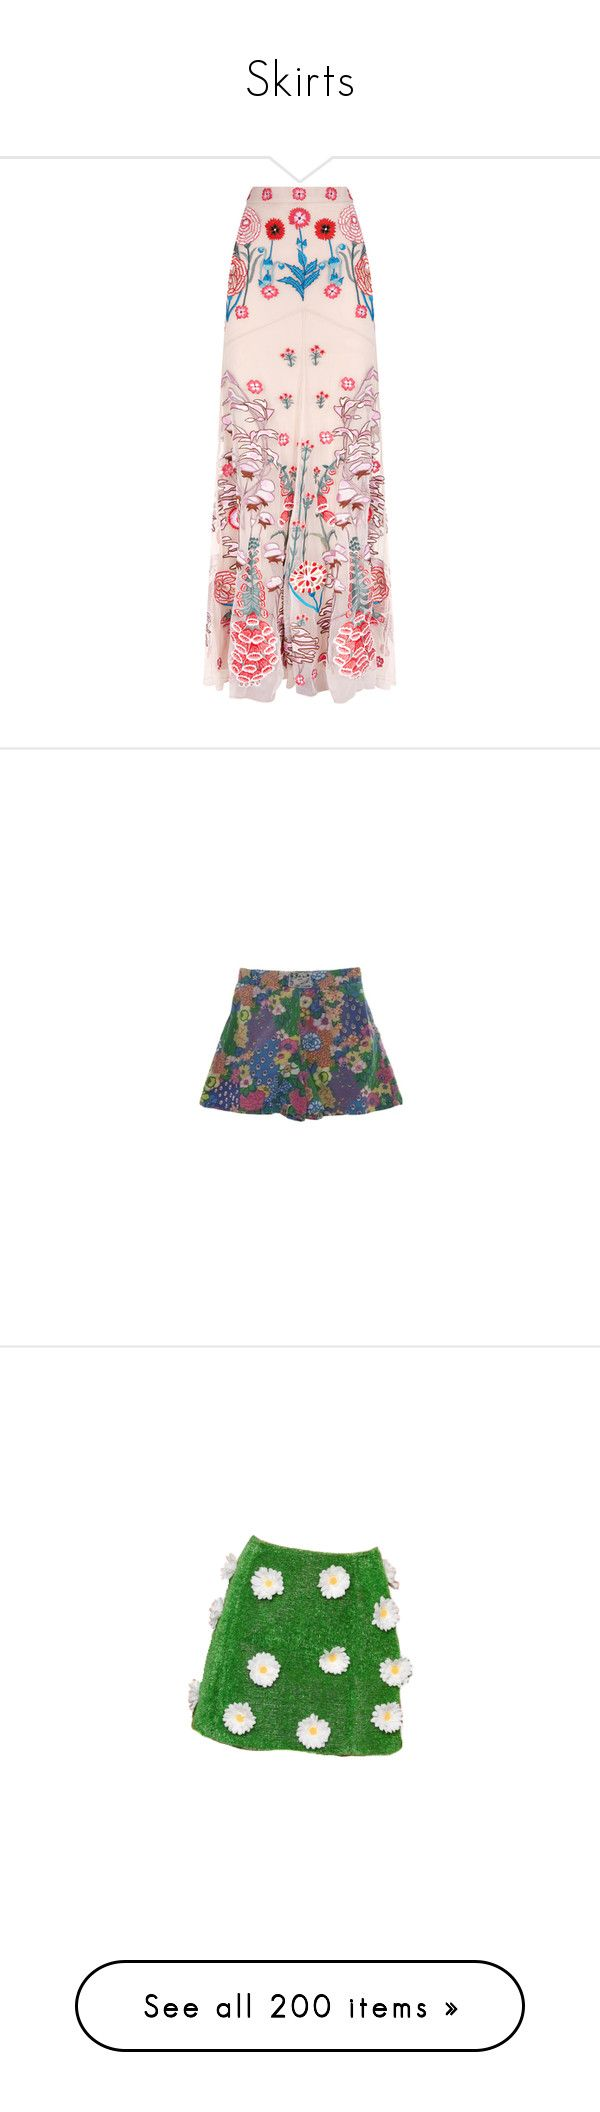 """Skirts"" by taught-to-fly19 on Polyvore featuring skirts, long skirts, long pink skirt, ankle length skirts, temperley london skirt, maxi skirt, bottoms, shorts, rustyzipper e vintage trunks"